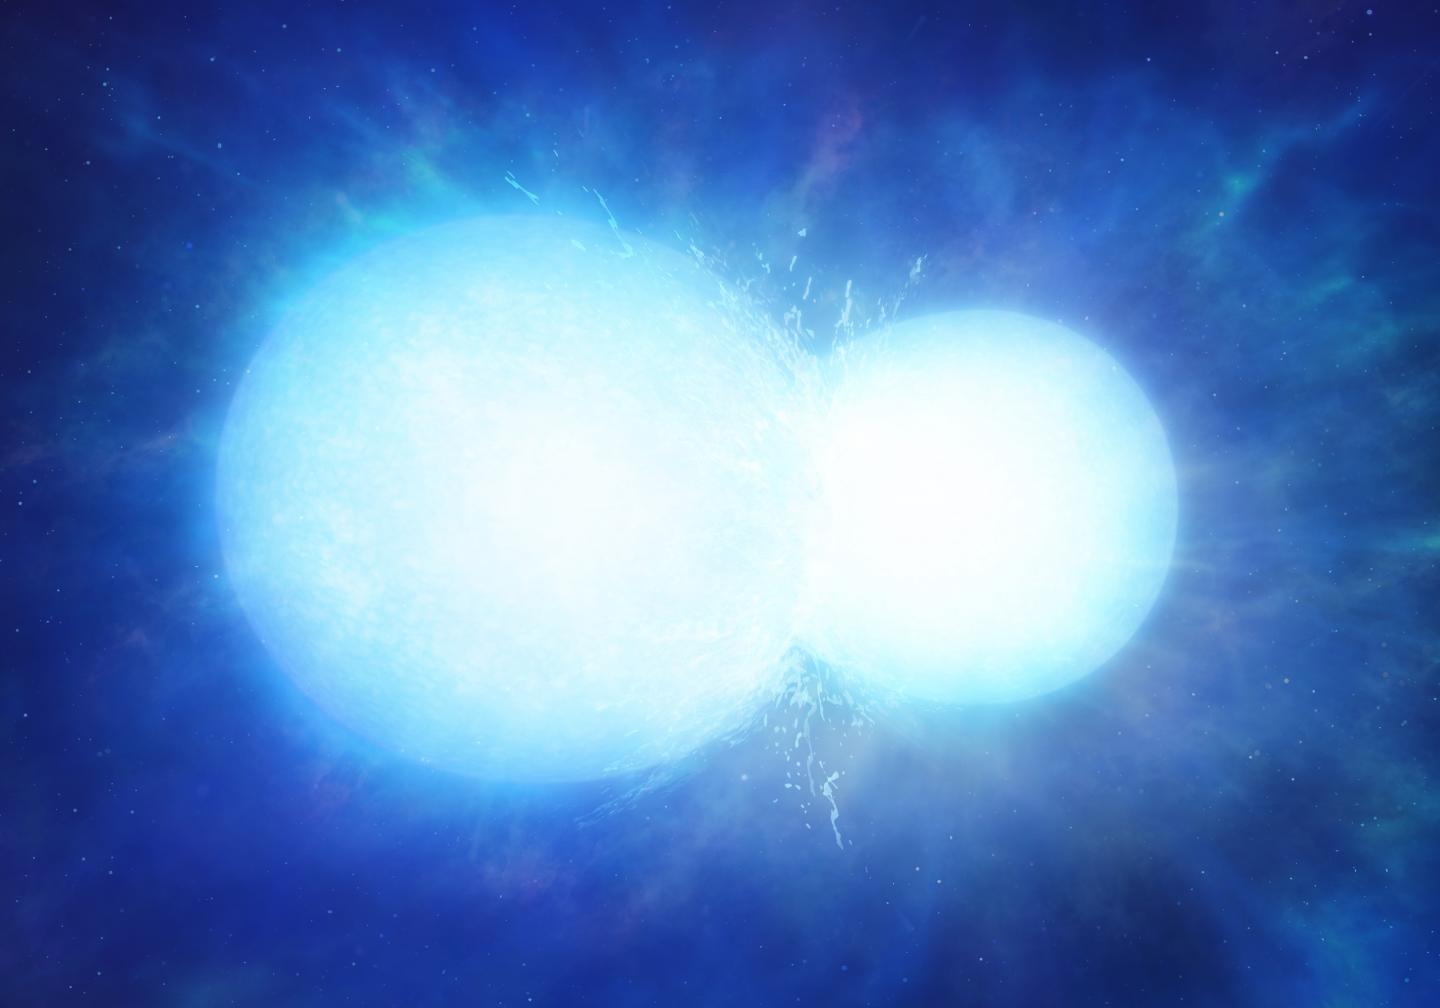 Artist's Impression of Two White Dwarfs in the Process of Merging